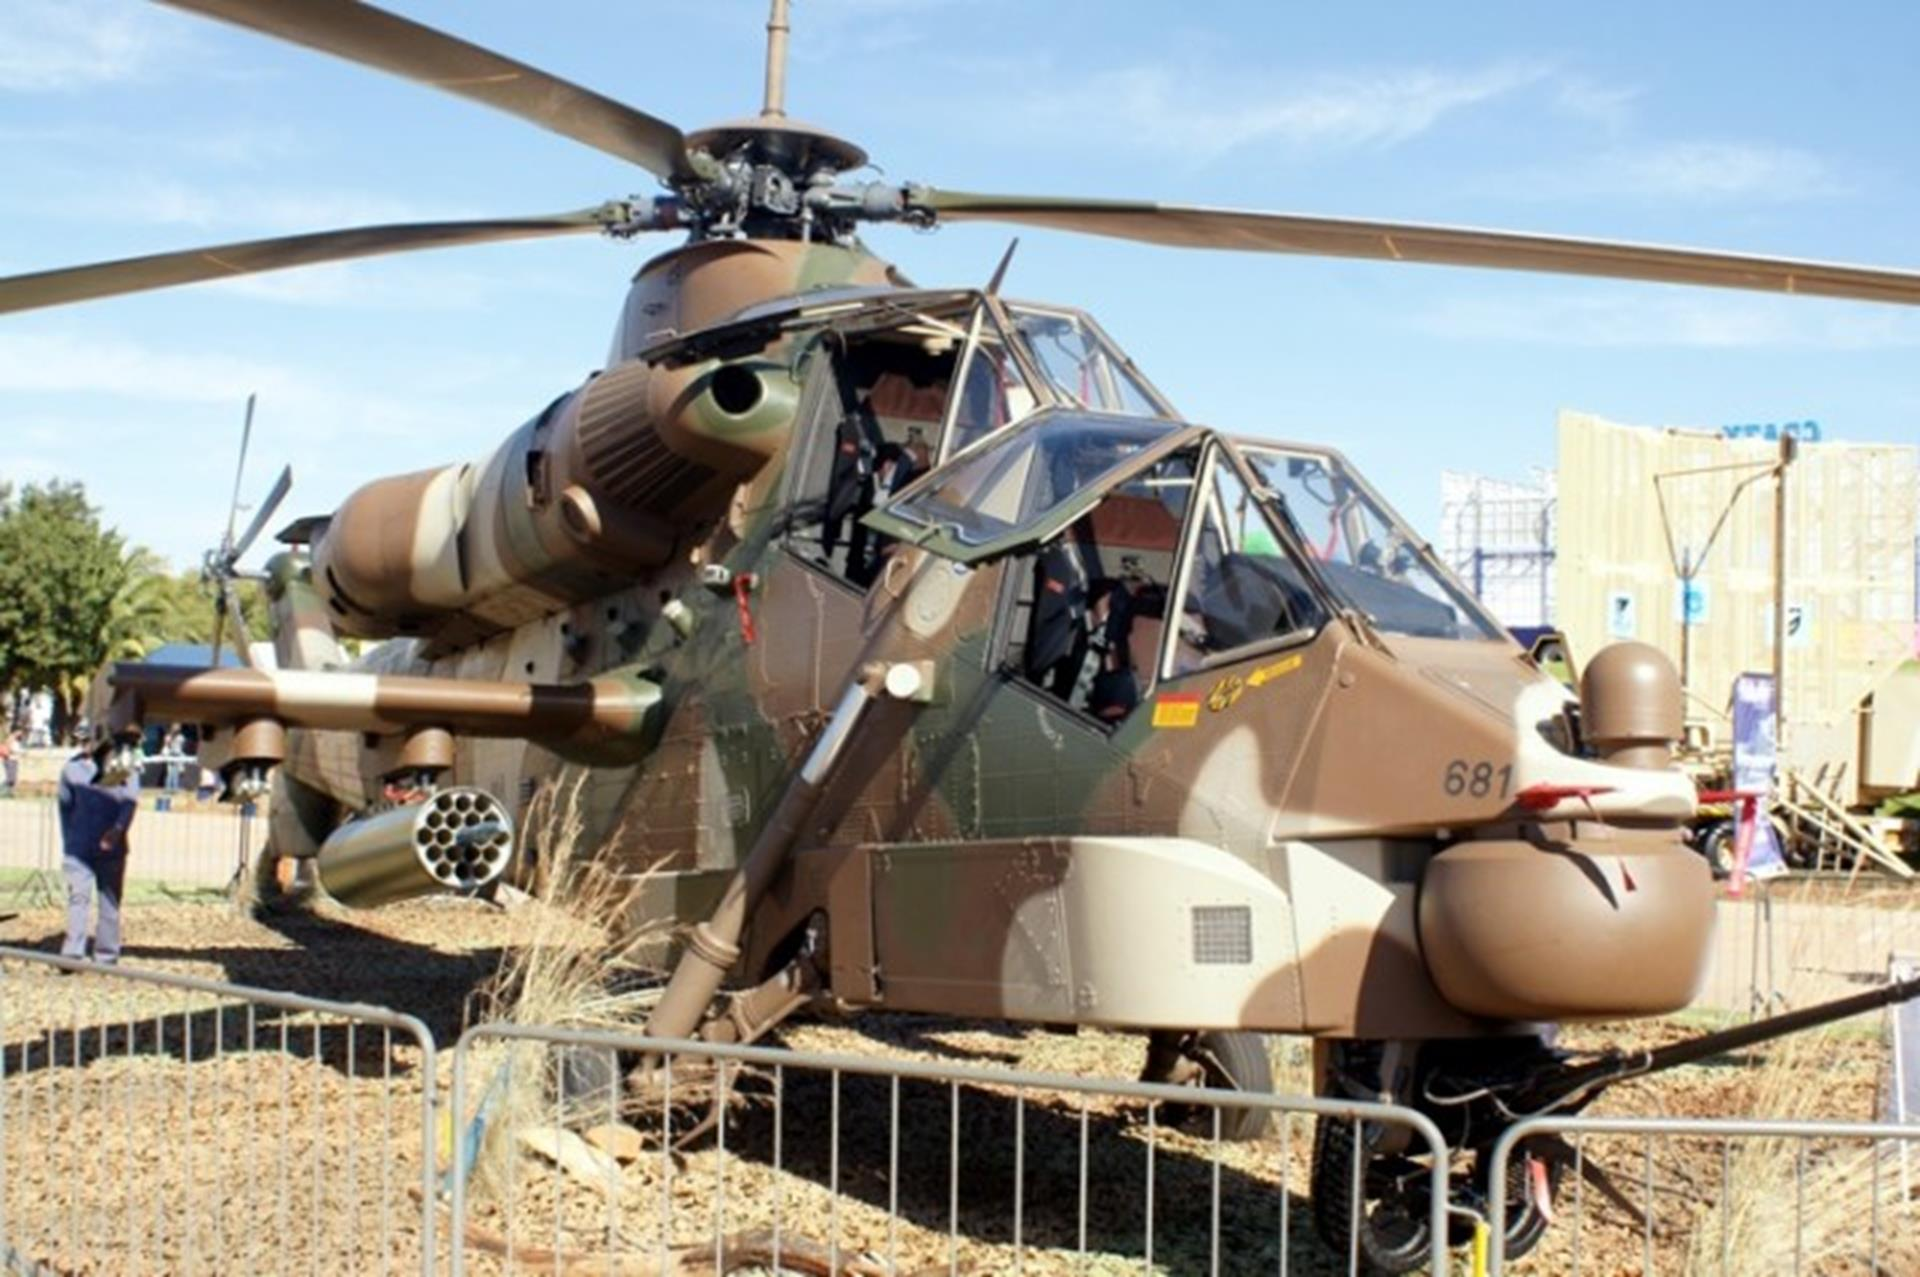 Rooivalk Helicopter at the Rand Show